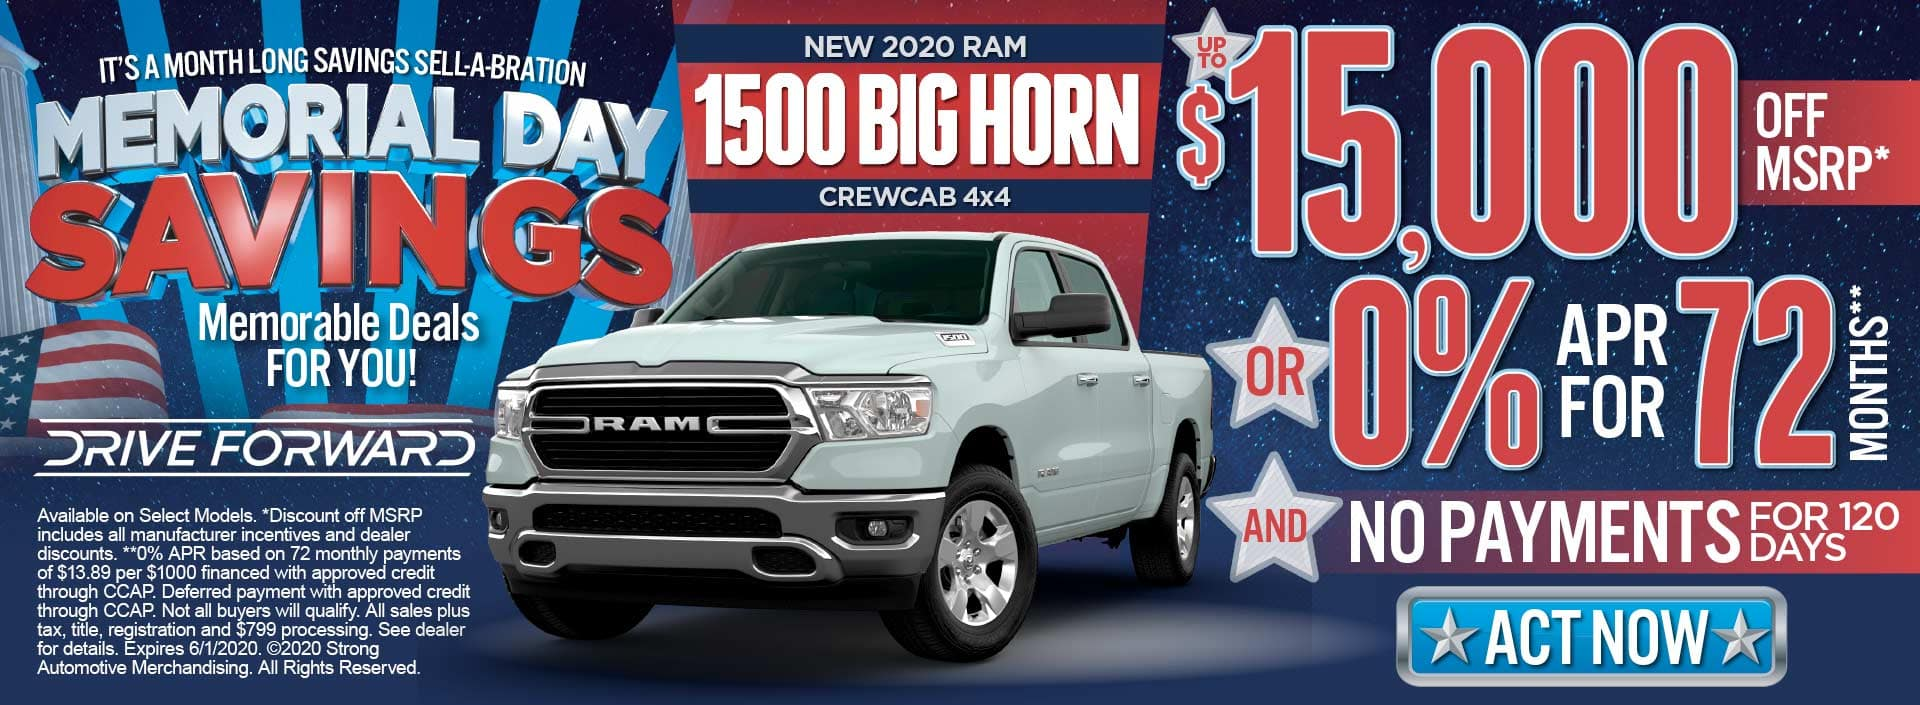 New 2020 ram 1500 up to $15k off msrp* or 0% for 72 mos** and no payments for 120 days*** act now